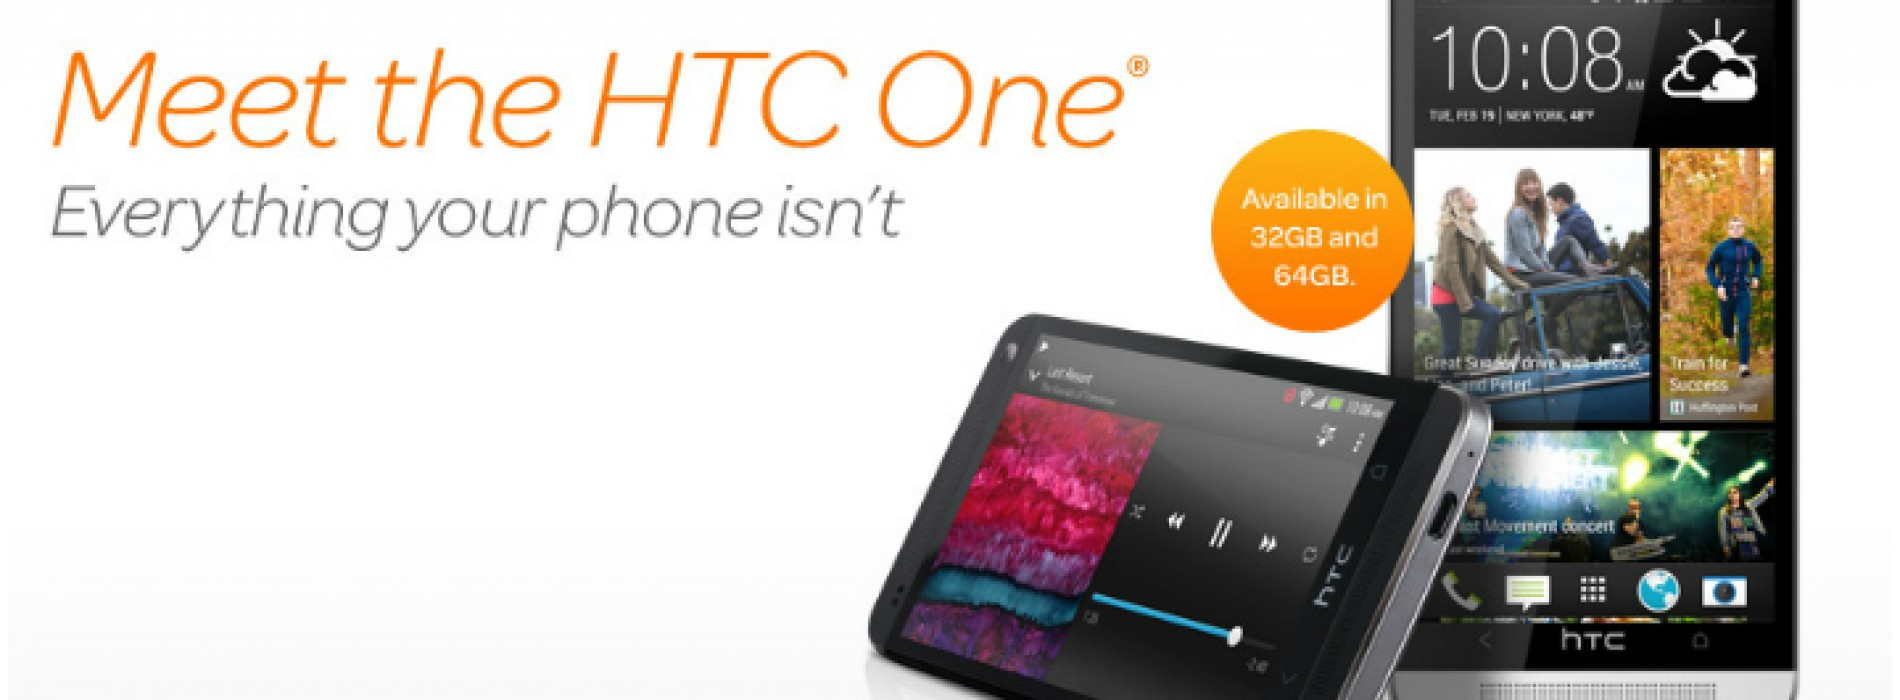 AT&T: HTC One arrives on April 19 with $199 price tag